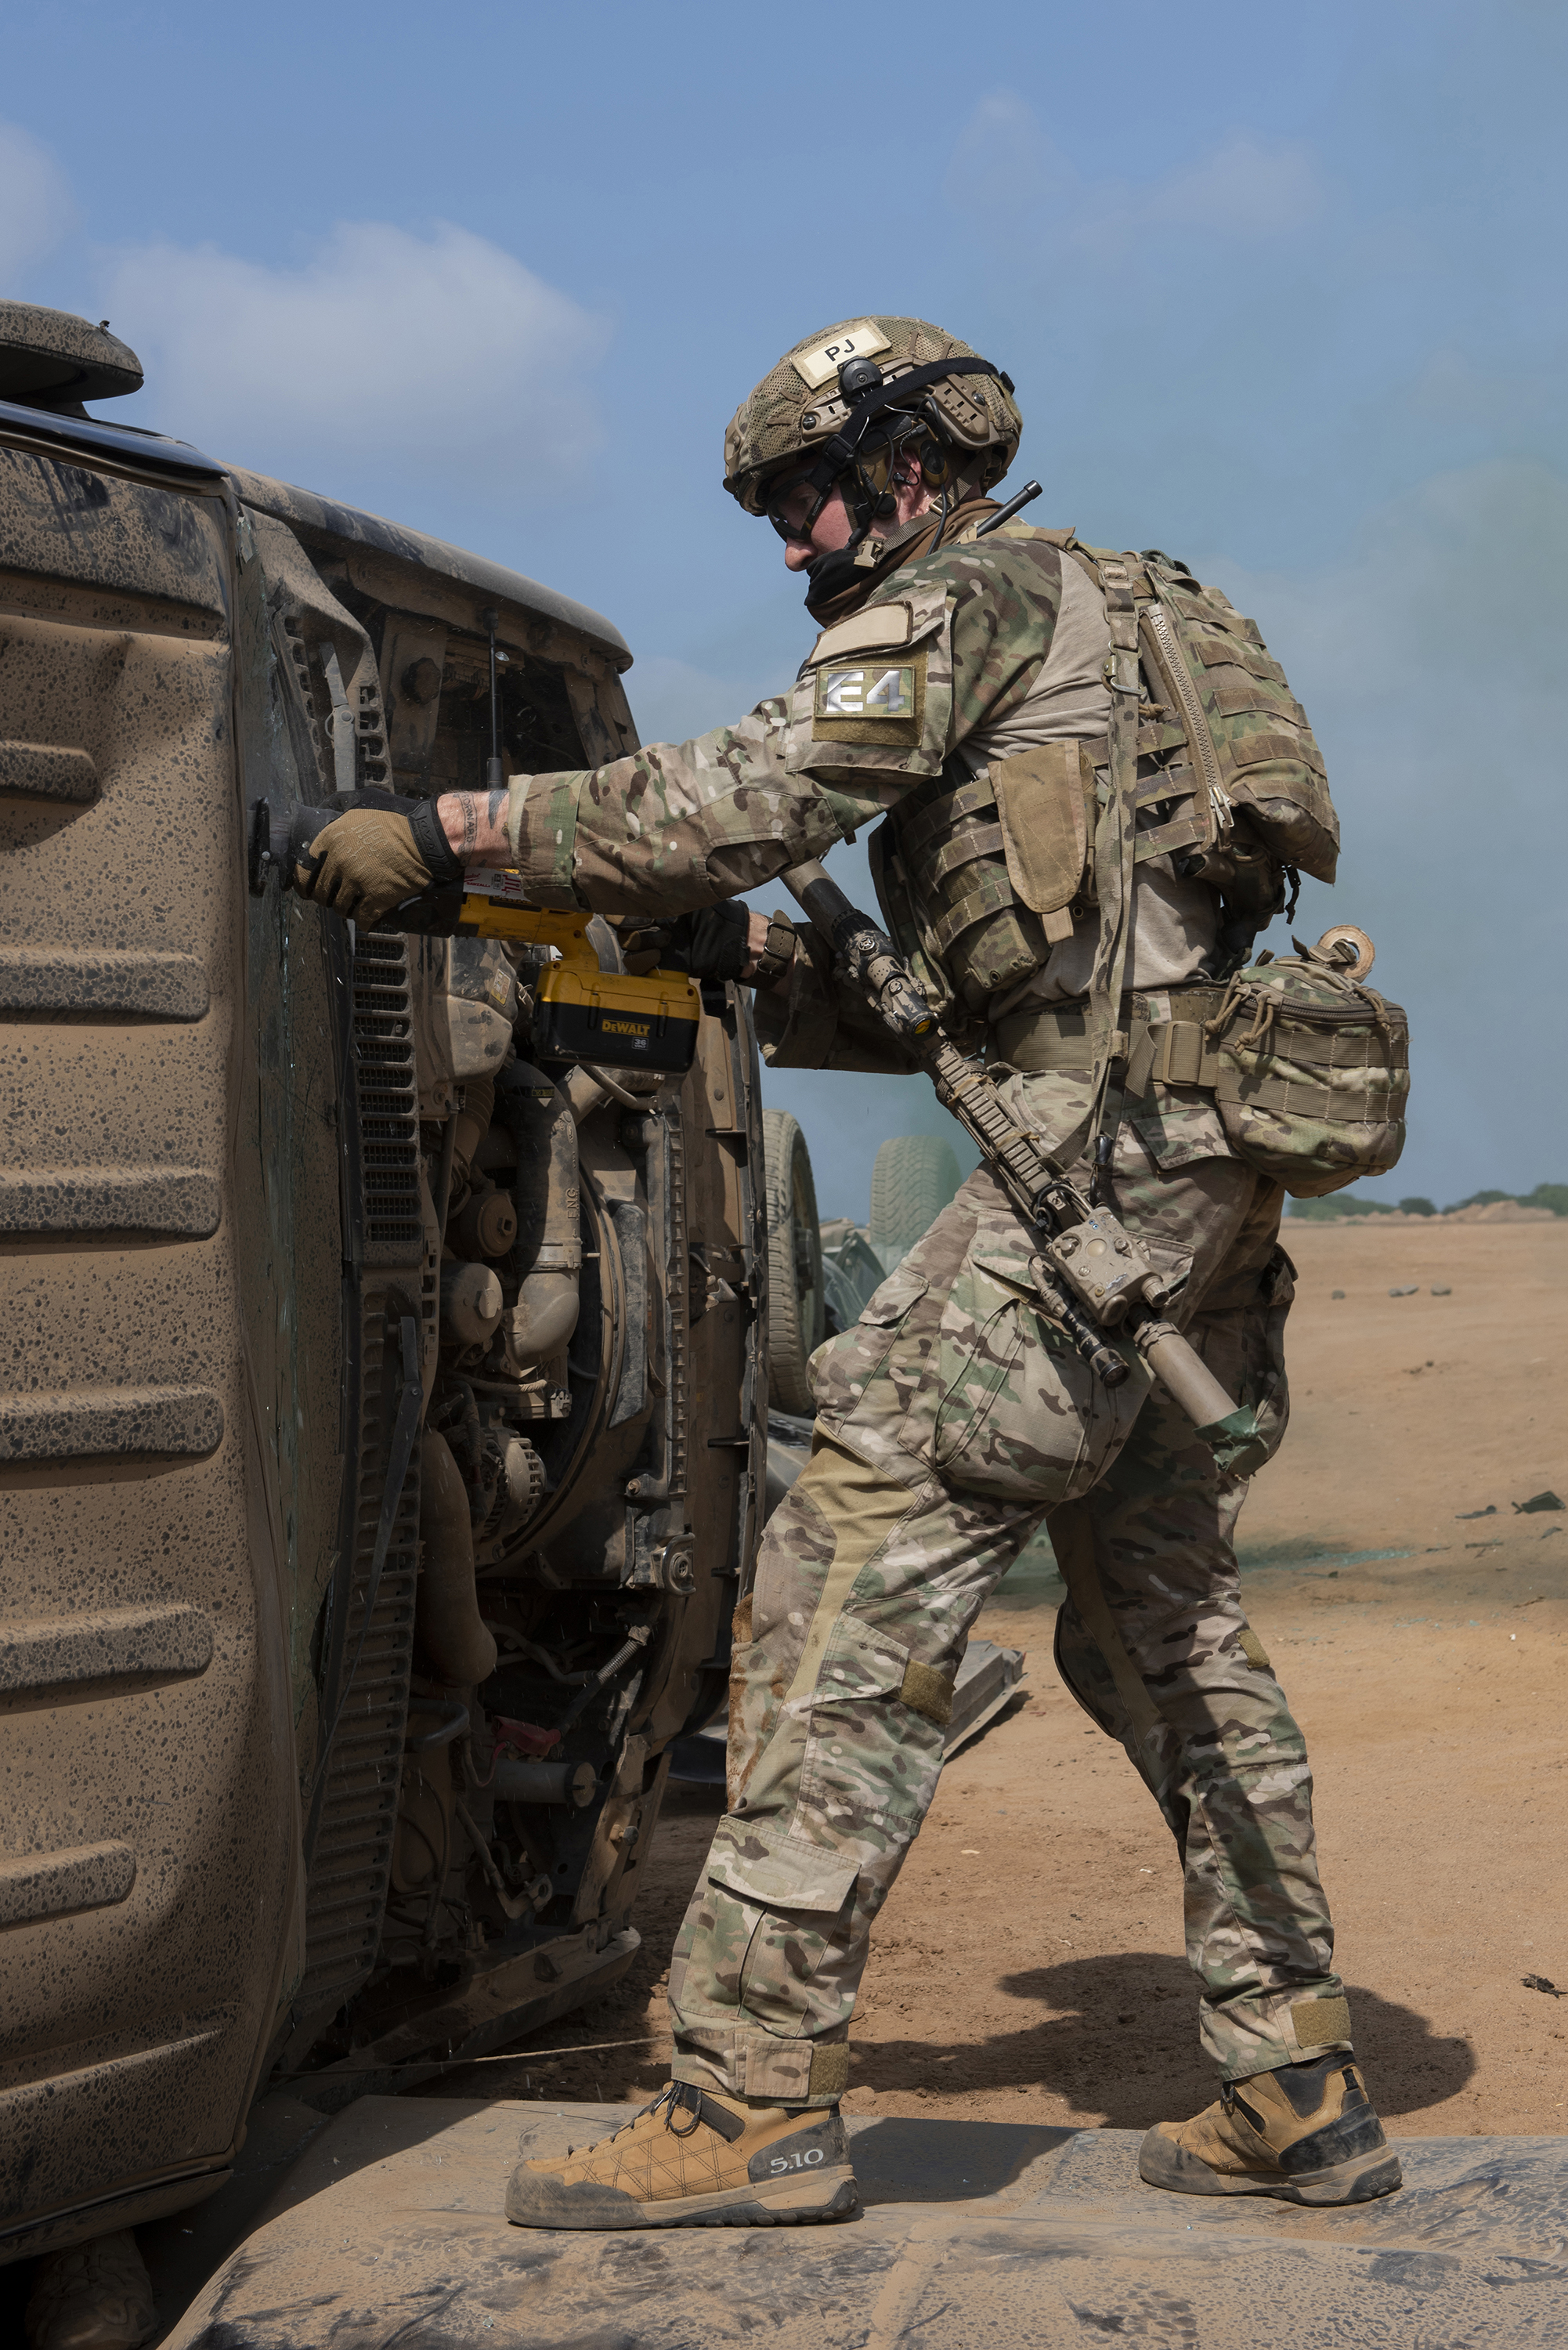 A Pararescueman from the 82nd Expeditionary Rescue Squadron, cuts through the windshield of an overturned vehicle in order to rescue a simulated casualty in Djibouti City, Djibouti, April 24, 2018. The Airmen conducted various extrication techniques during a joint mass casualty training exercise. (U.S. Air National Guard photo by Master Sgt. Sarah Mattison) (Portions of this image were obscured for security reasons)